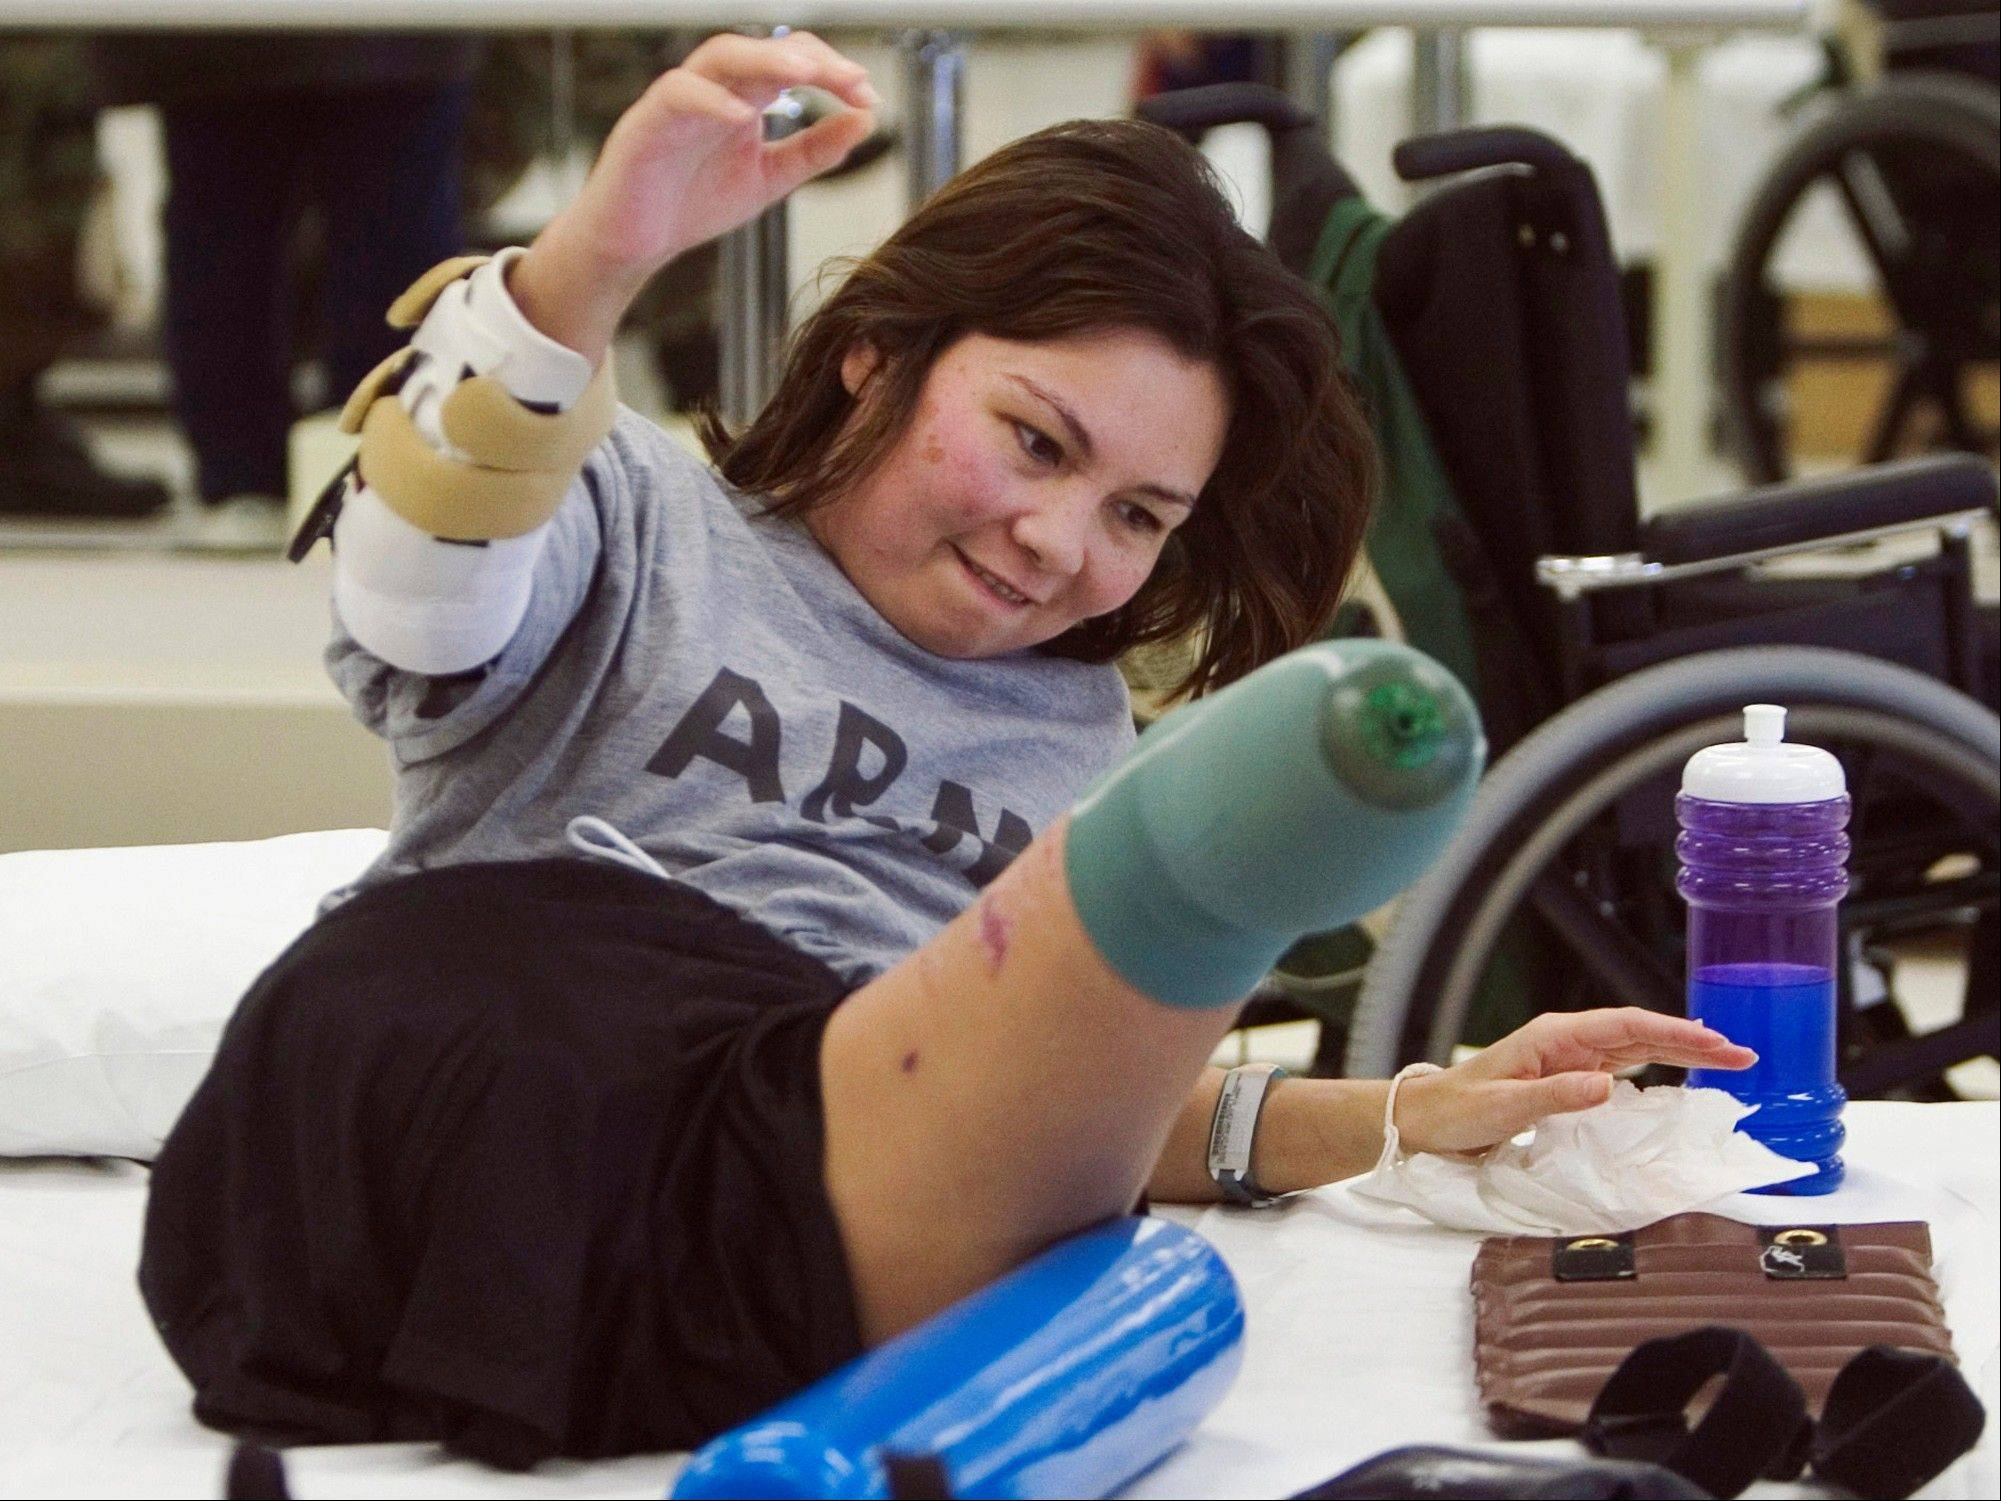 Jan. 31, 2005: Army Major Tammy Duckworth rolls herself up during physical therapy at the Walter Reed Army Medical Center in Washington. Duckworth lost both legs when the helicopter she was in was struck by a rocket-propelled grenade during a mission near Baghdad on Nov. 12, 2004.